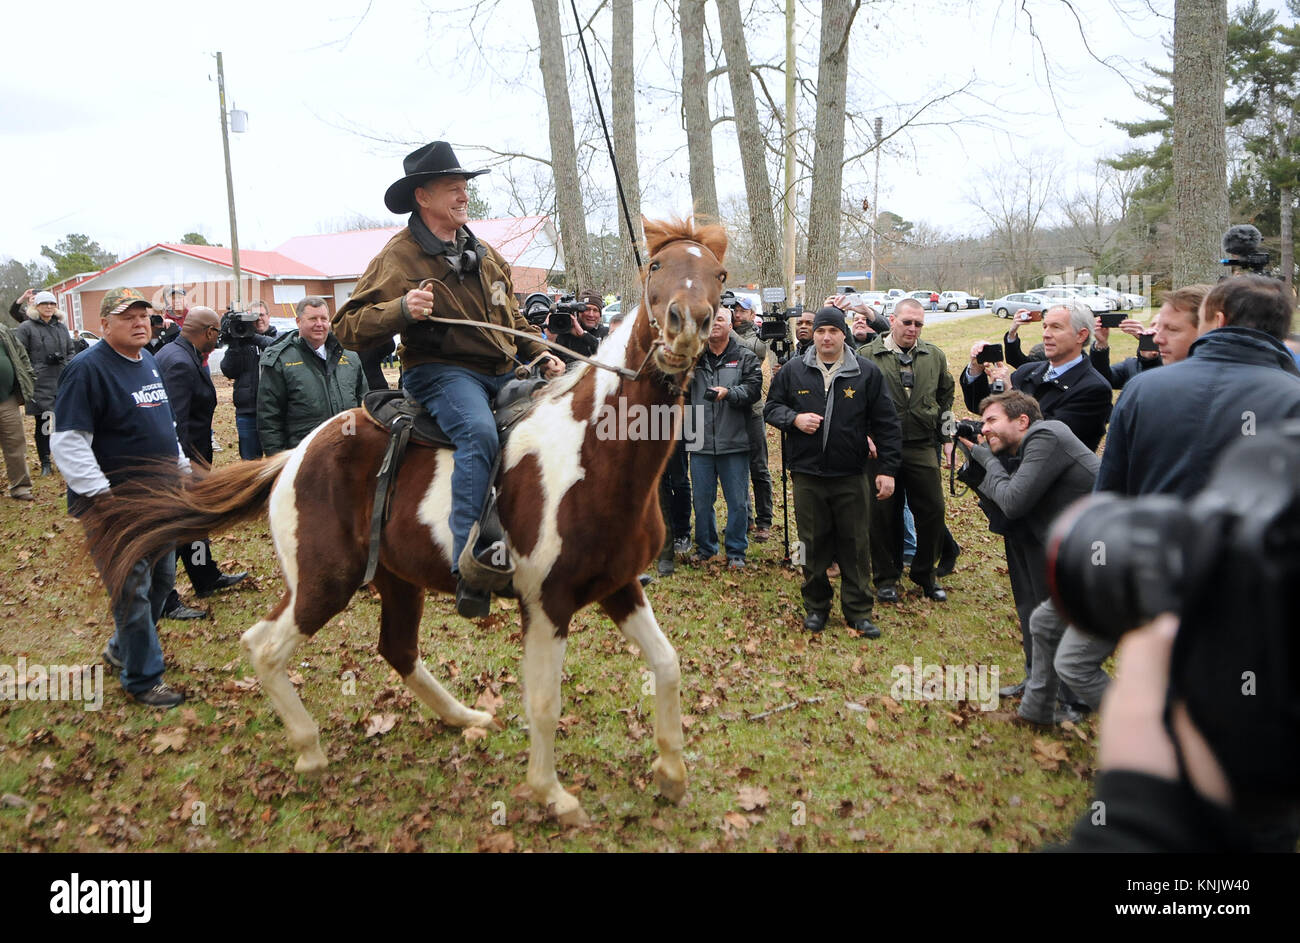 Gallant, United States. 12th Dec, 2017. Judge Roy Moore departs on horseback after voting at the polling station - Stock Image